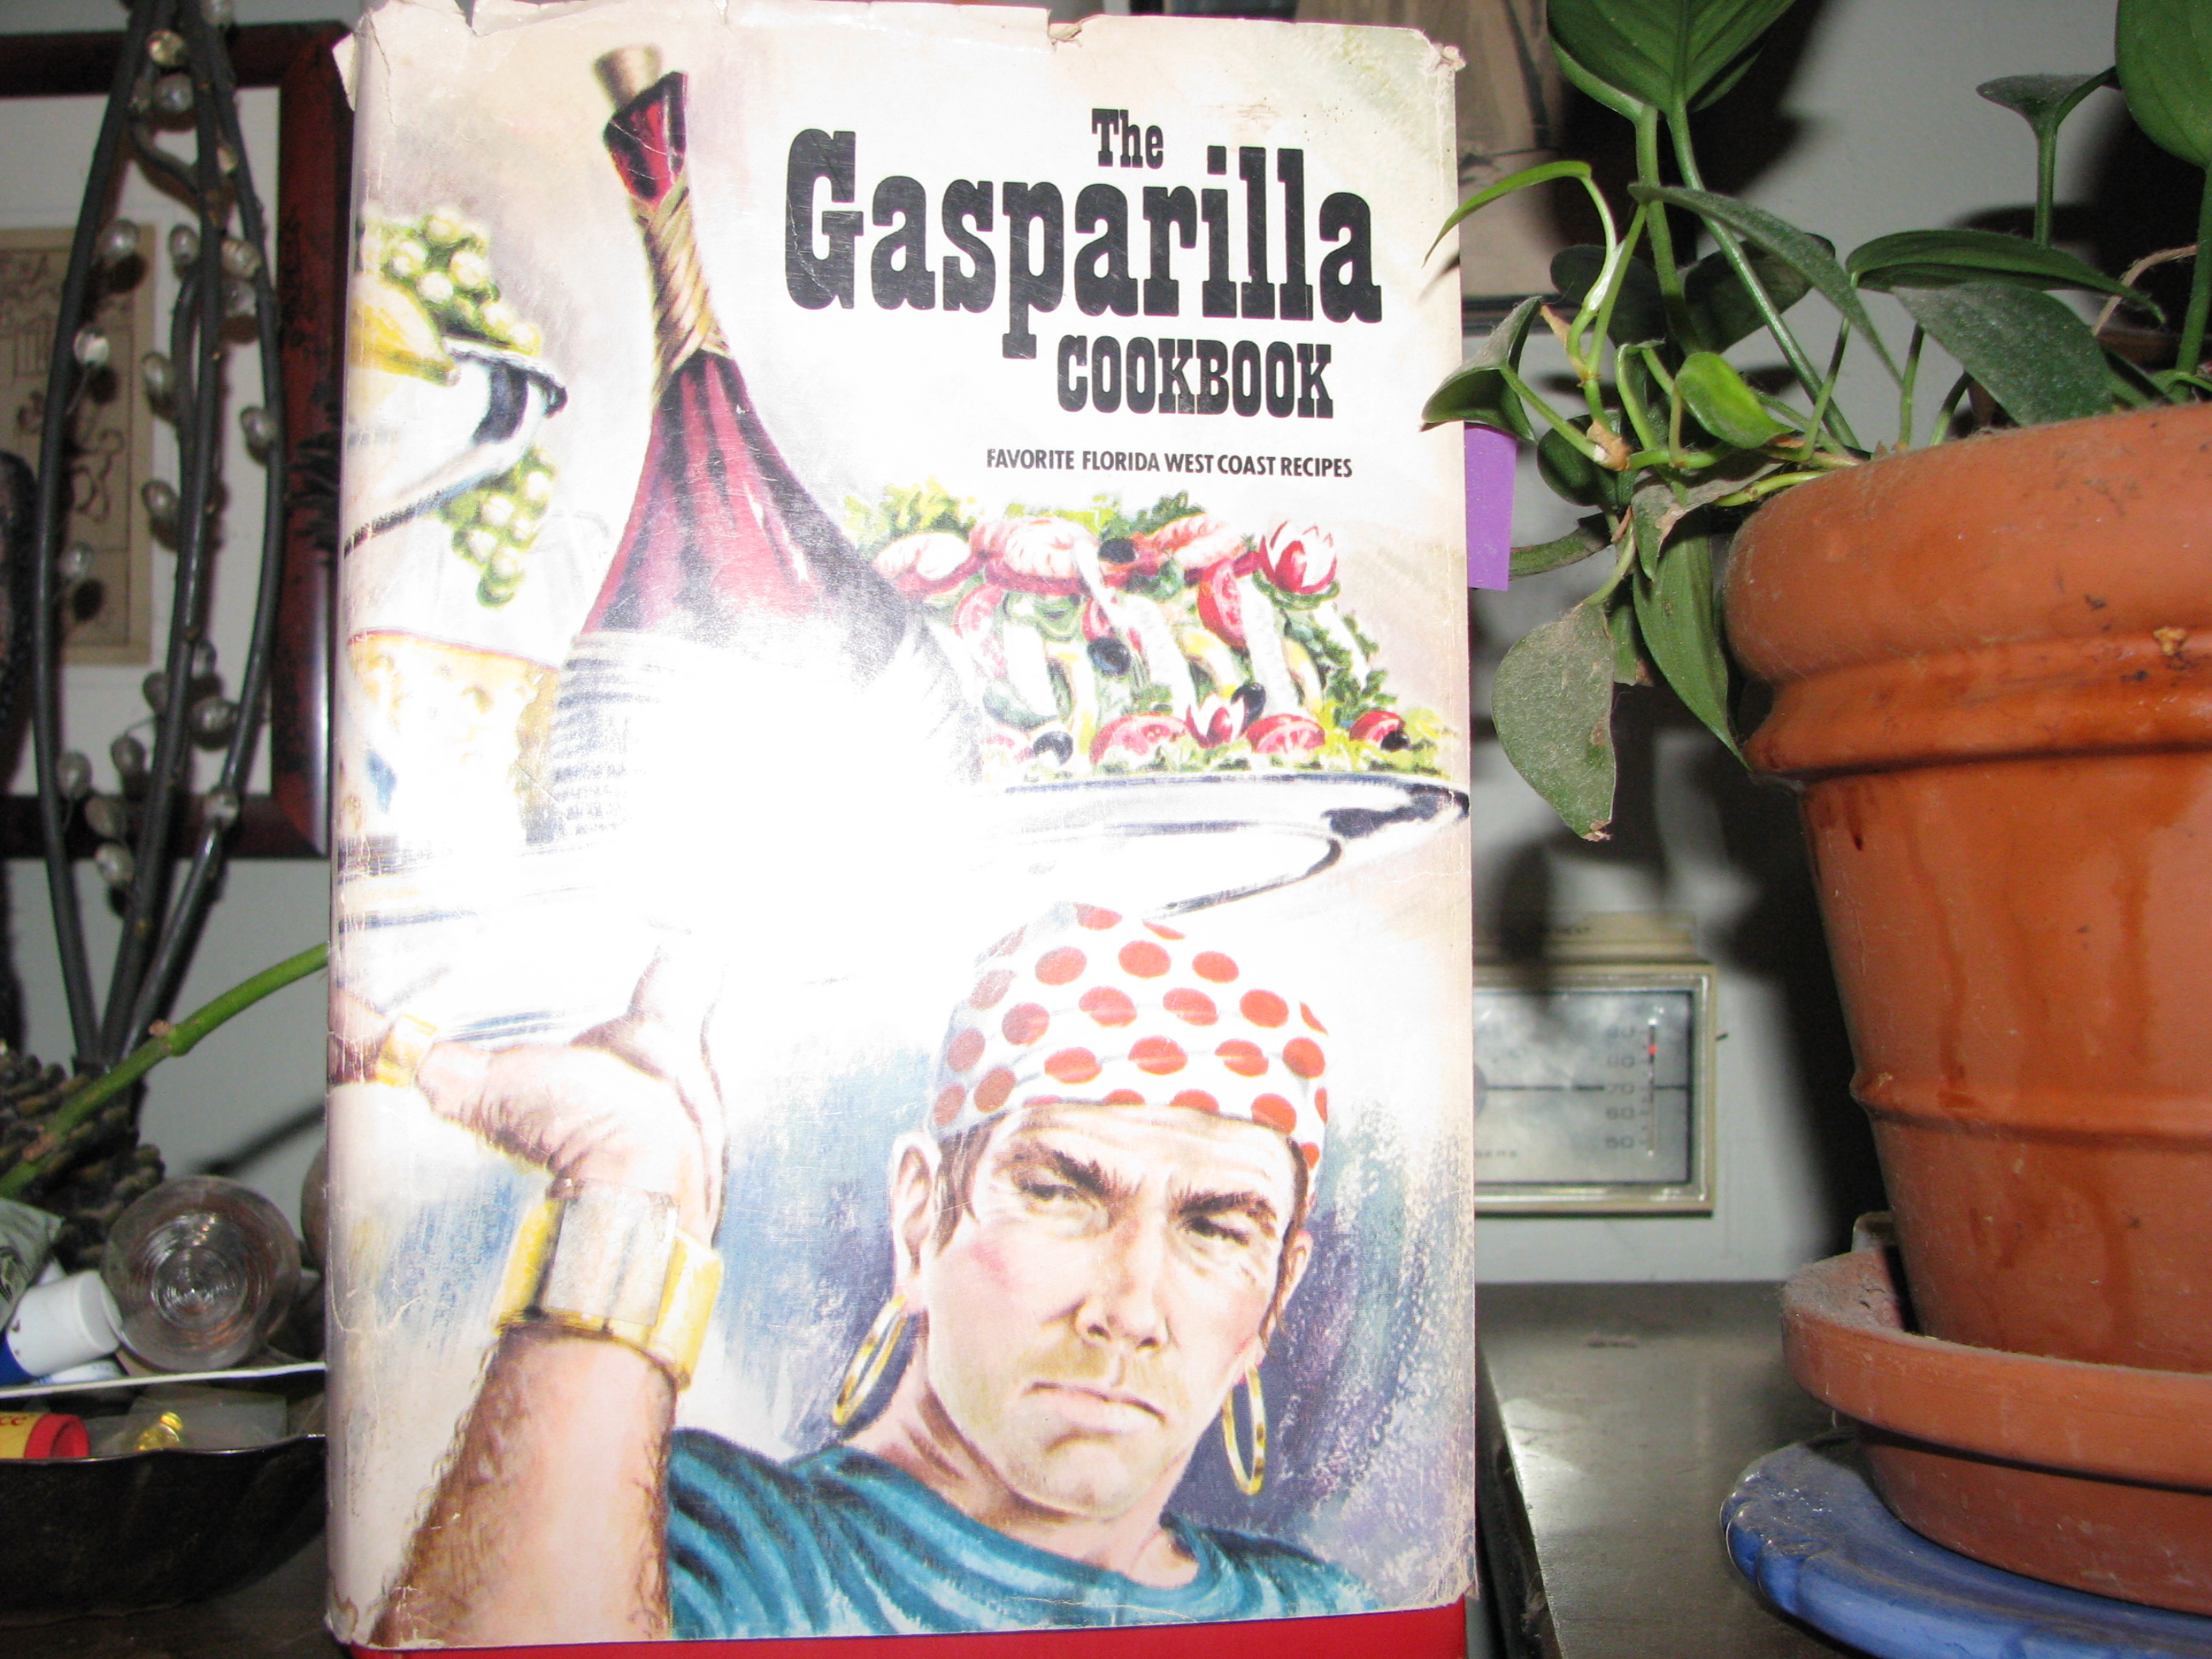 Gasparilla cookbook recipe